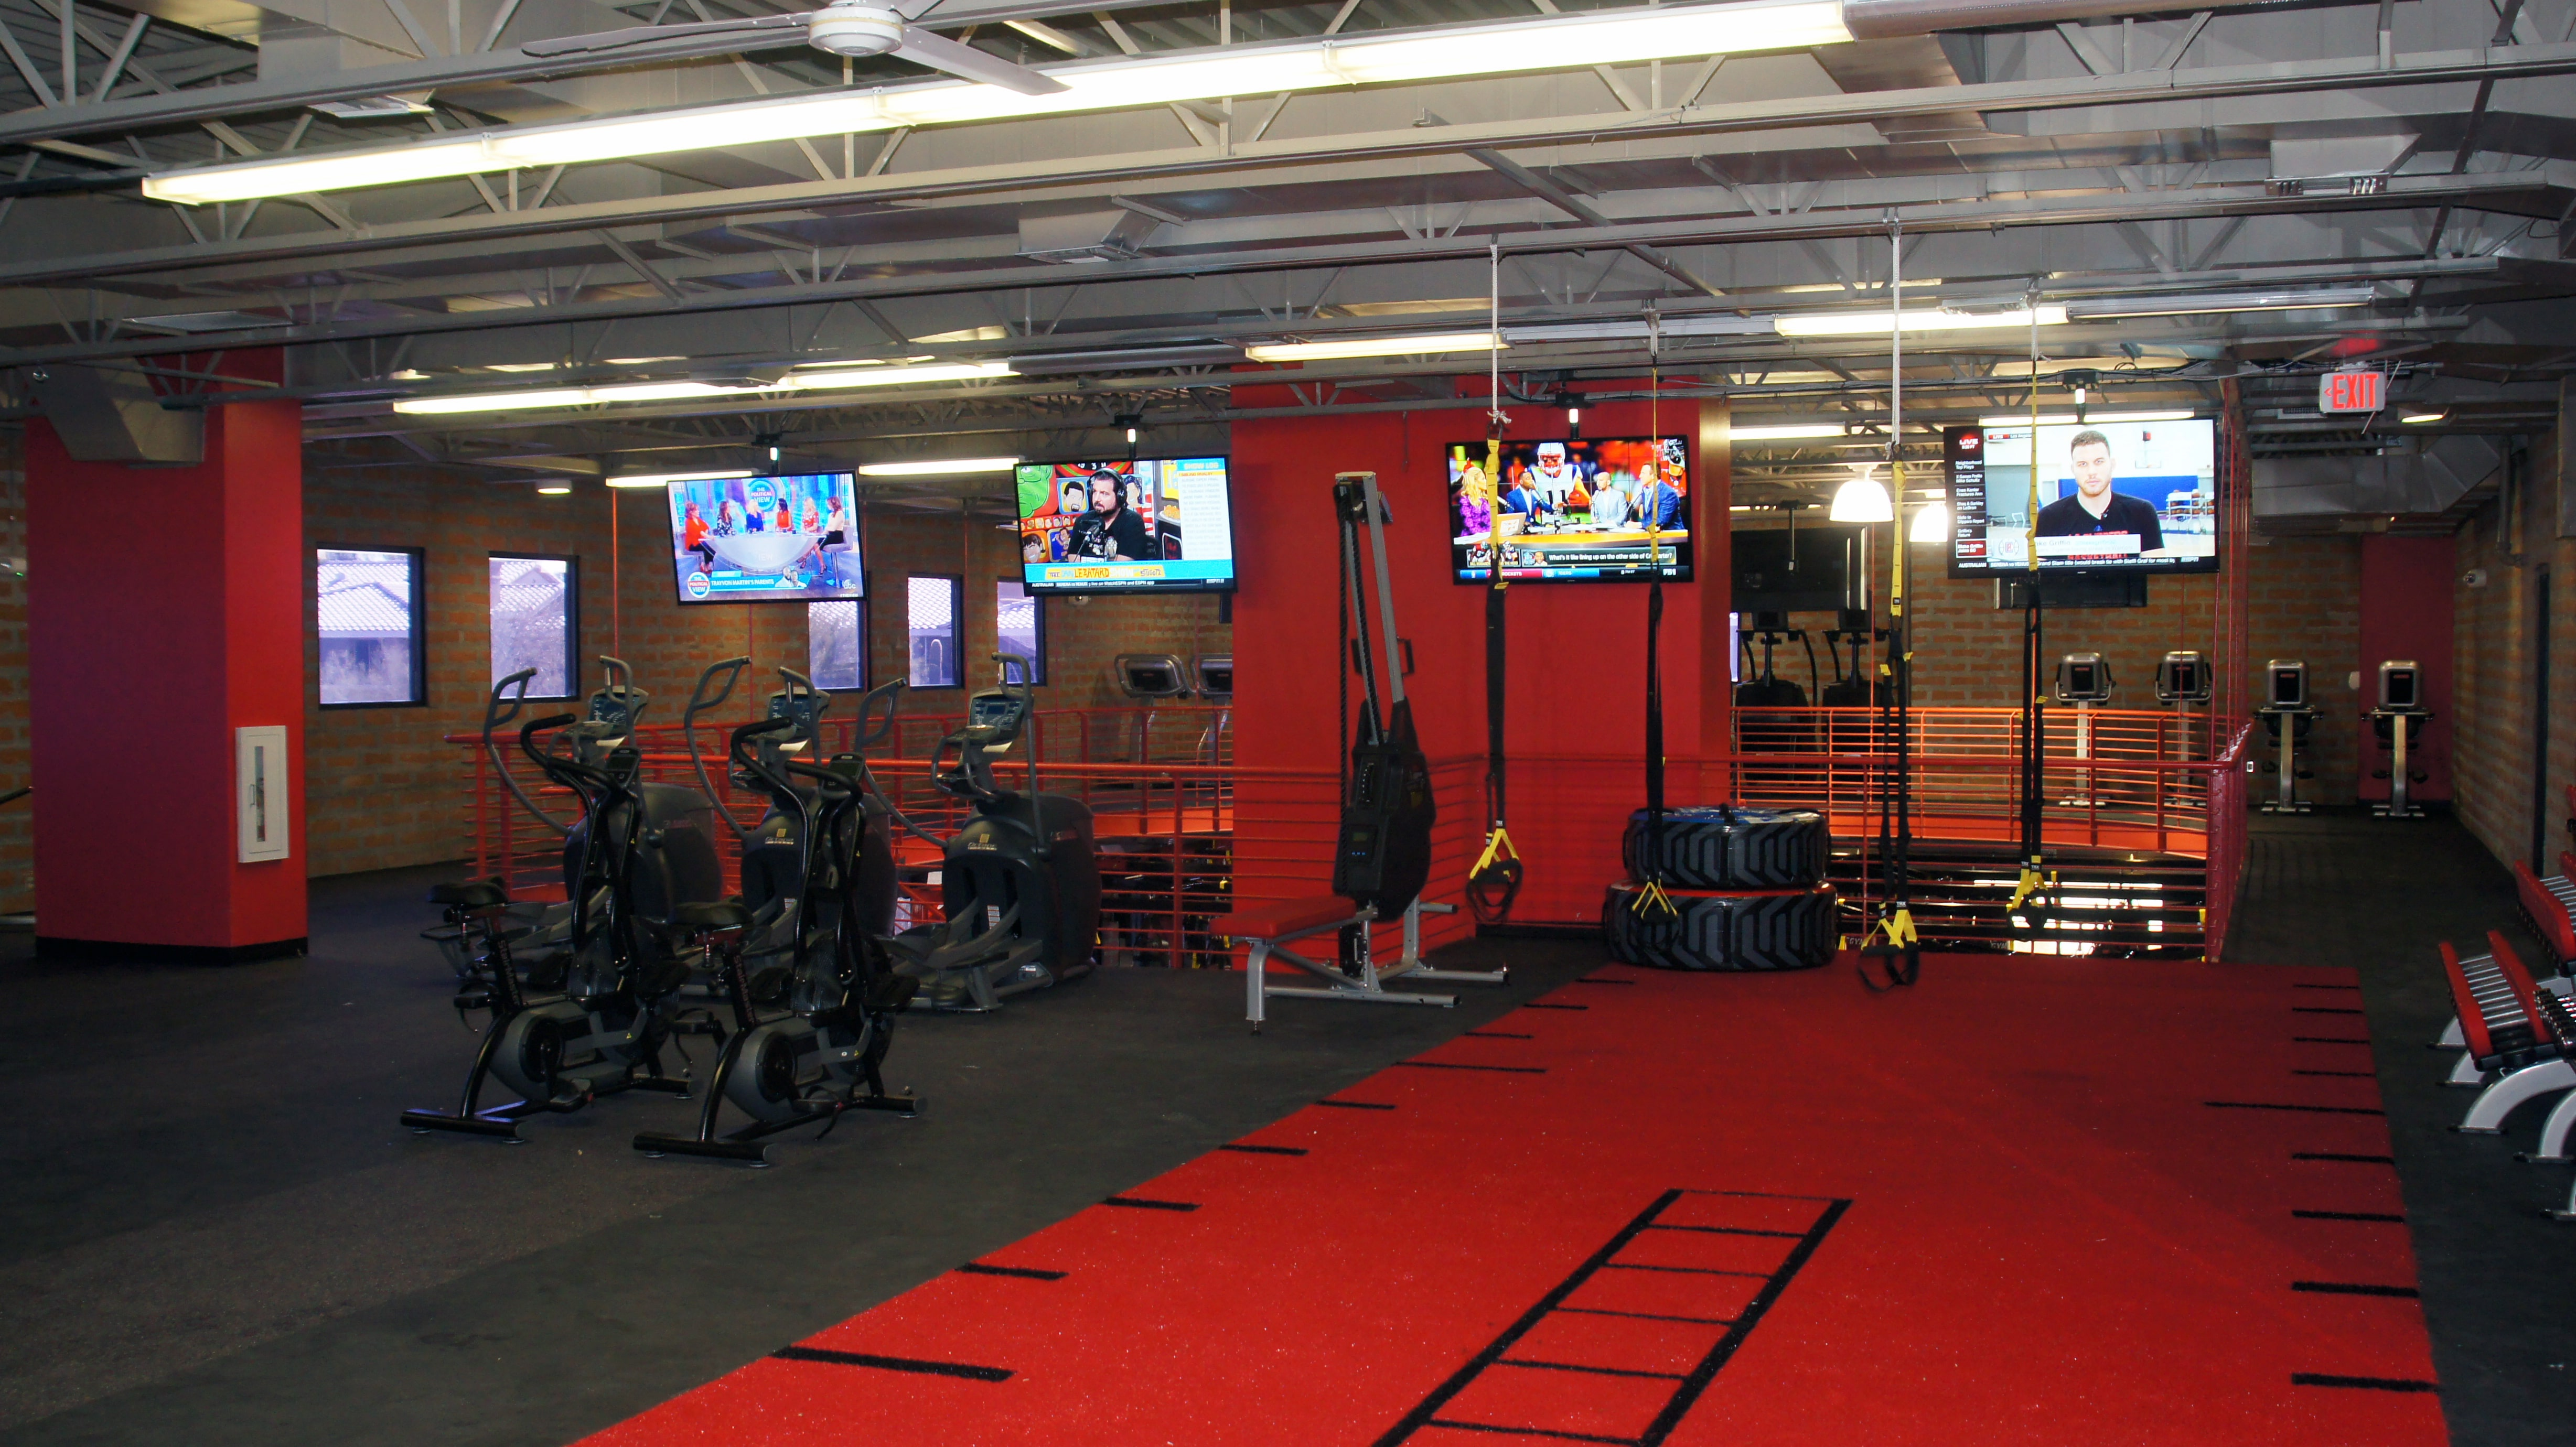 New Ufc Gym In Phoenix Gets A Heart Pounding Sound System